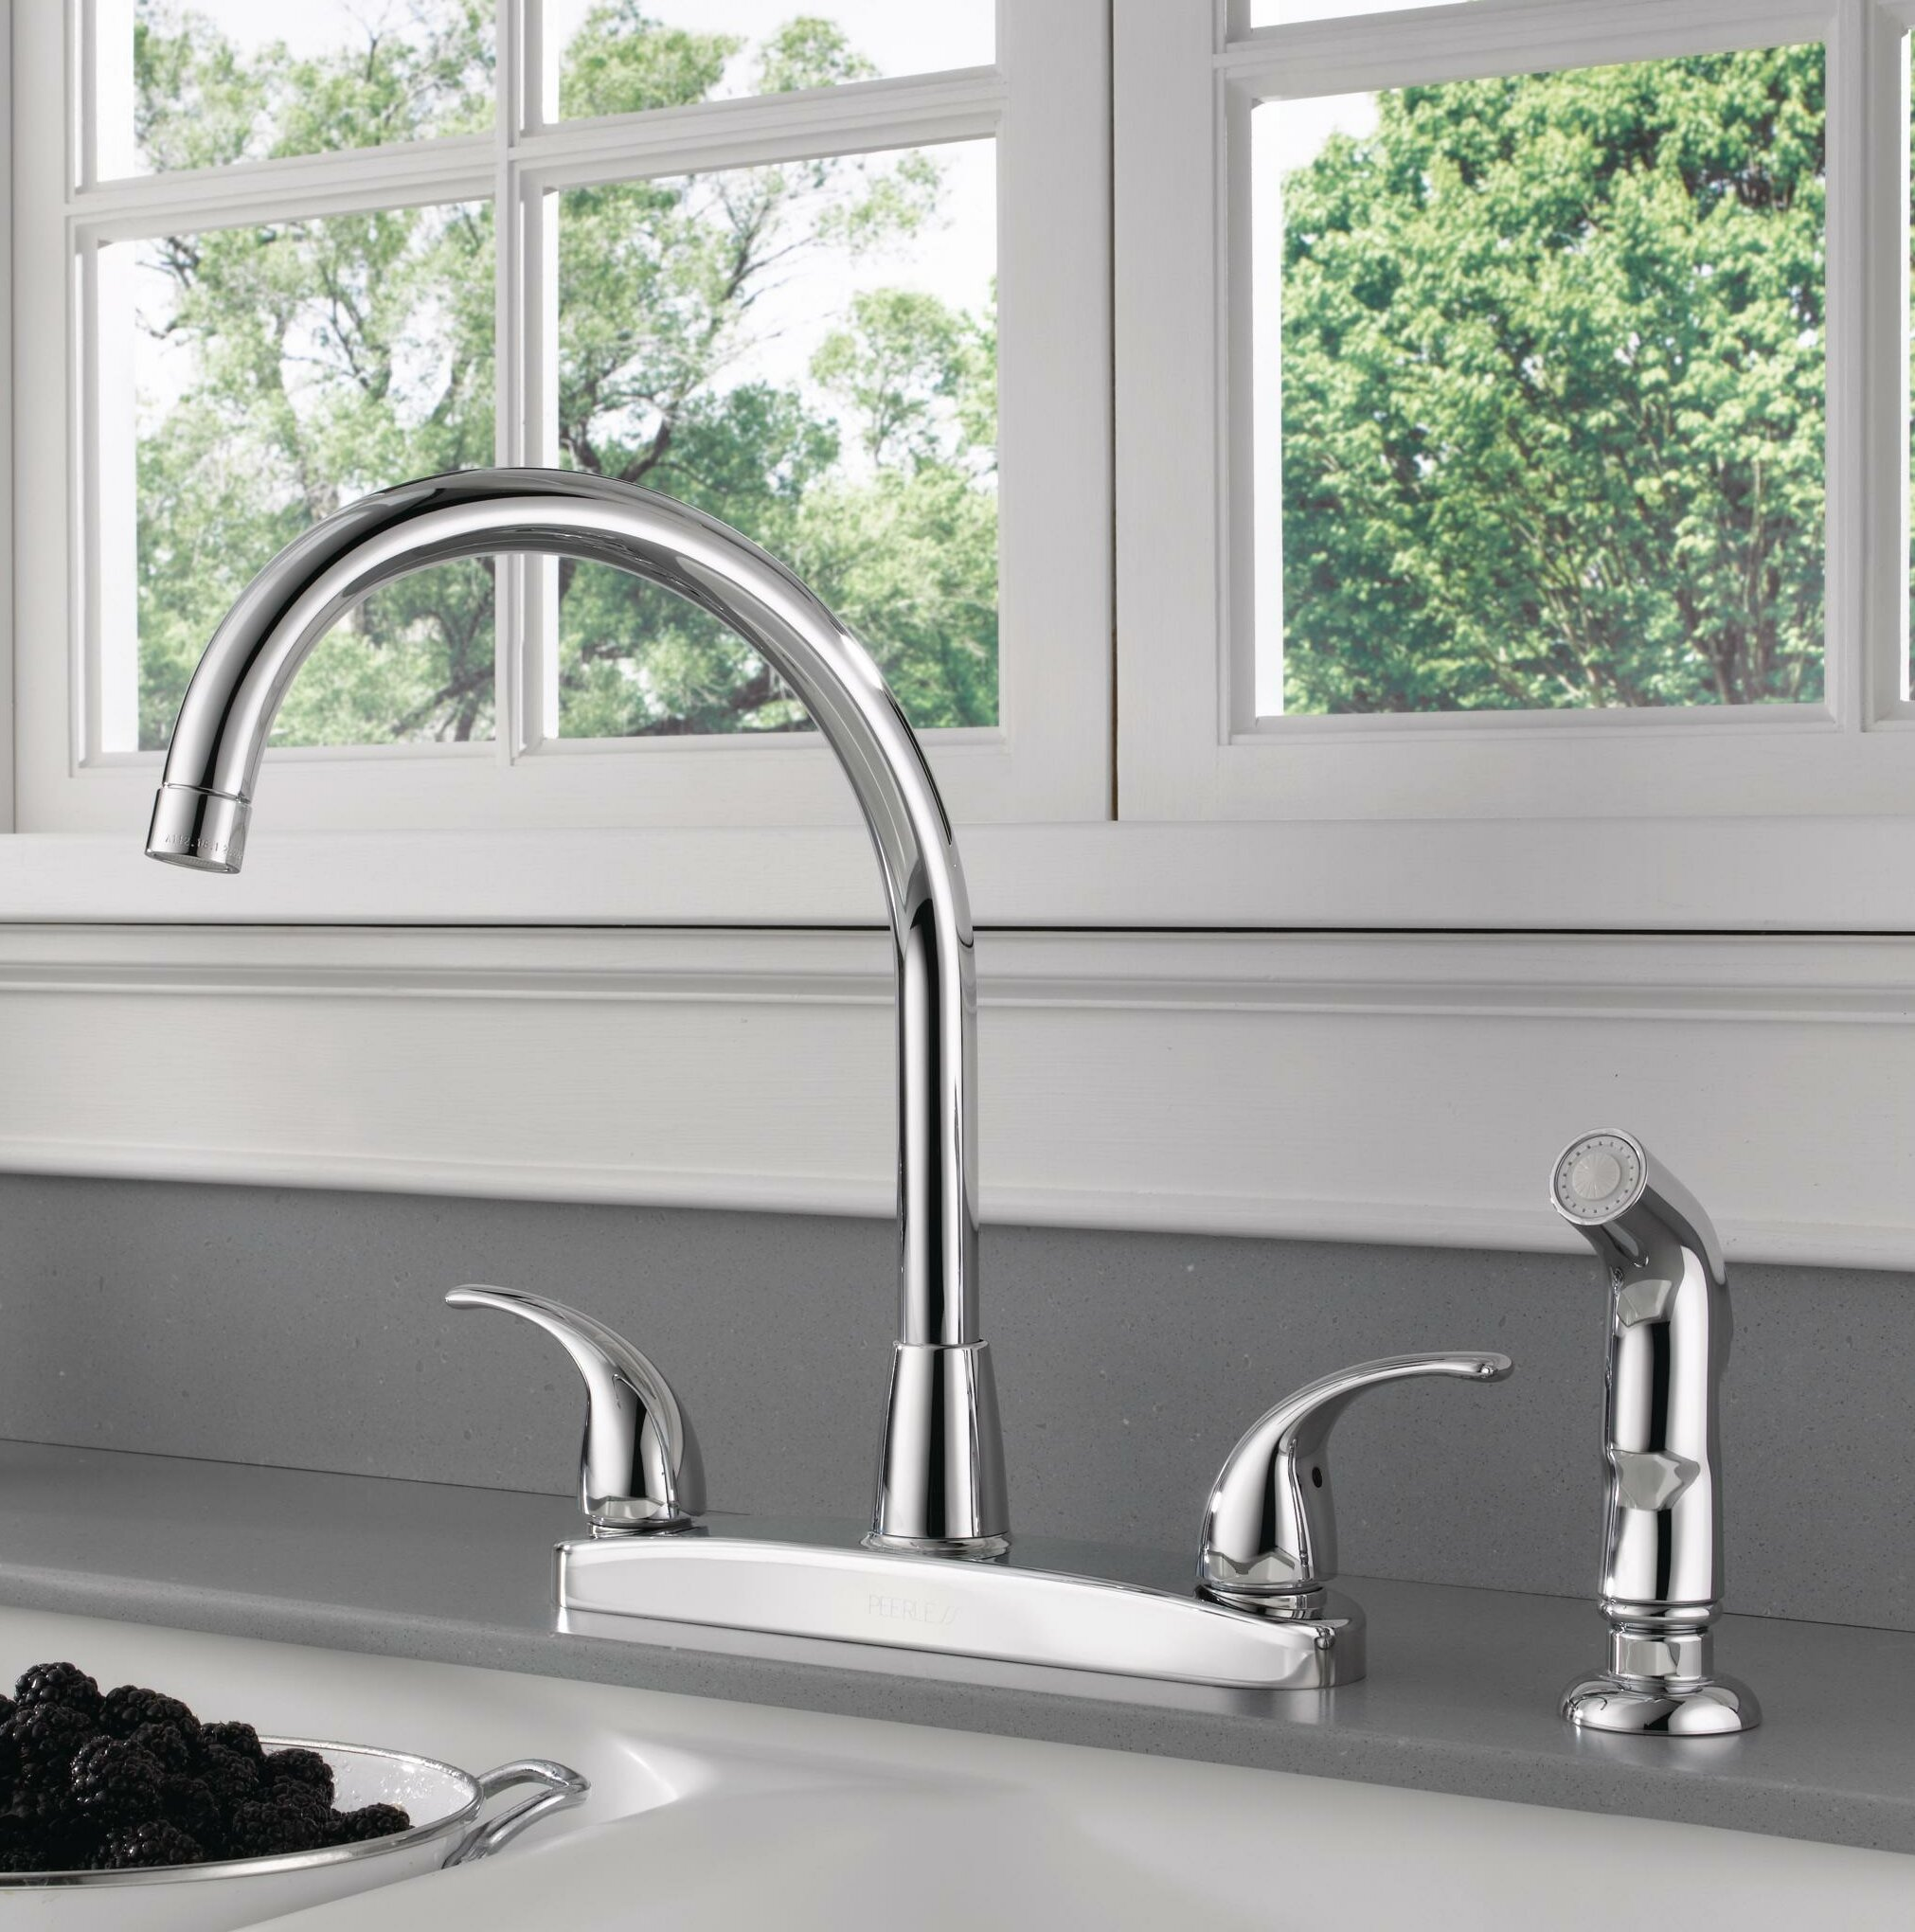 Peerless Faucets Double Handle Kitchen Faucet With Side Spray Reviews Wayfair